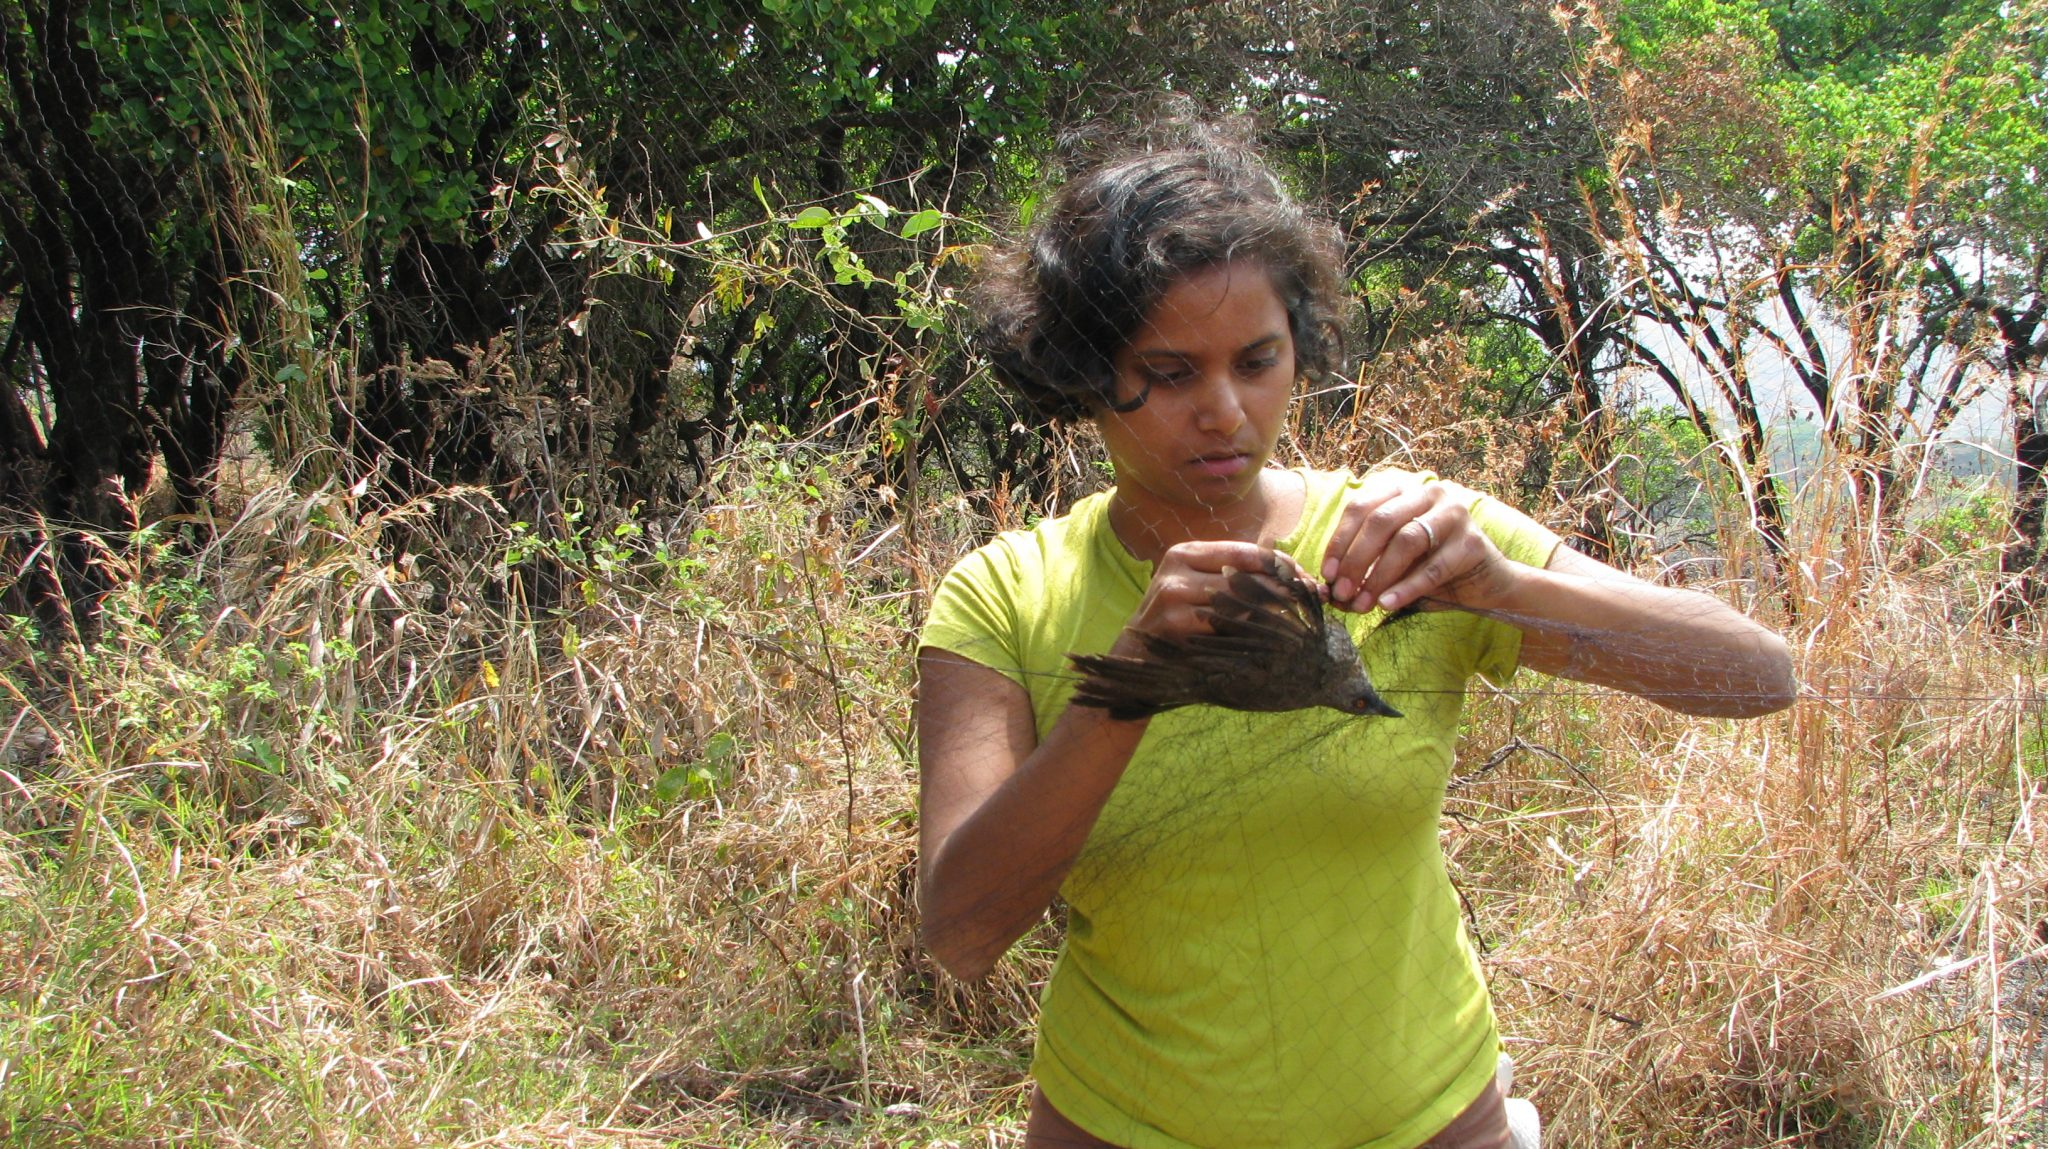 Dr. Sushma Reddy in the field, recovering a live bird for research